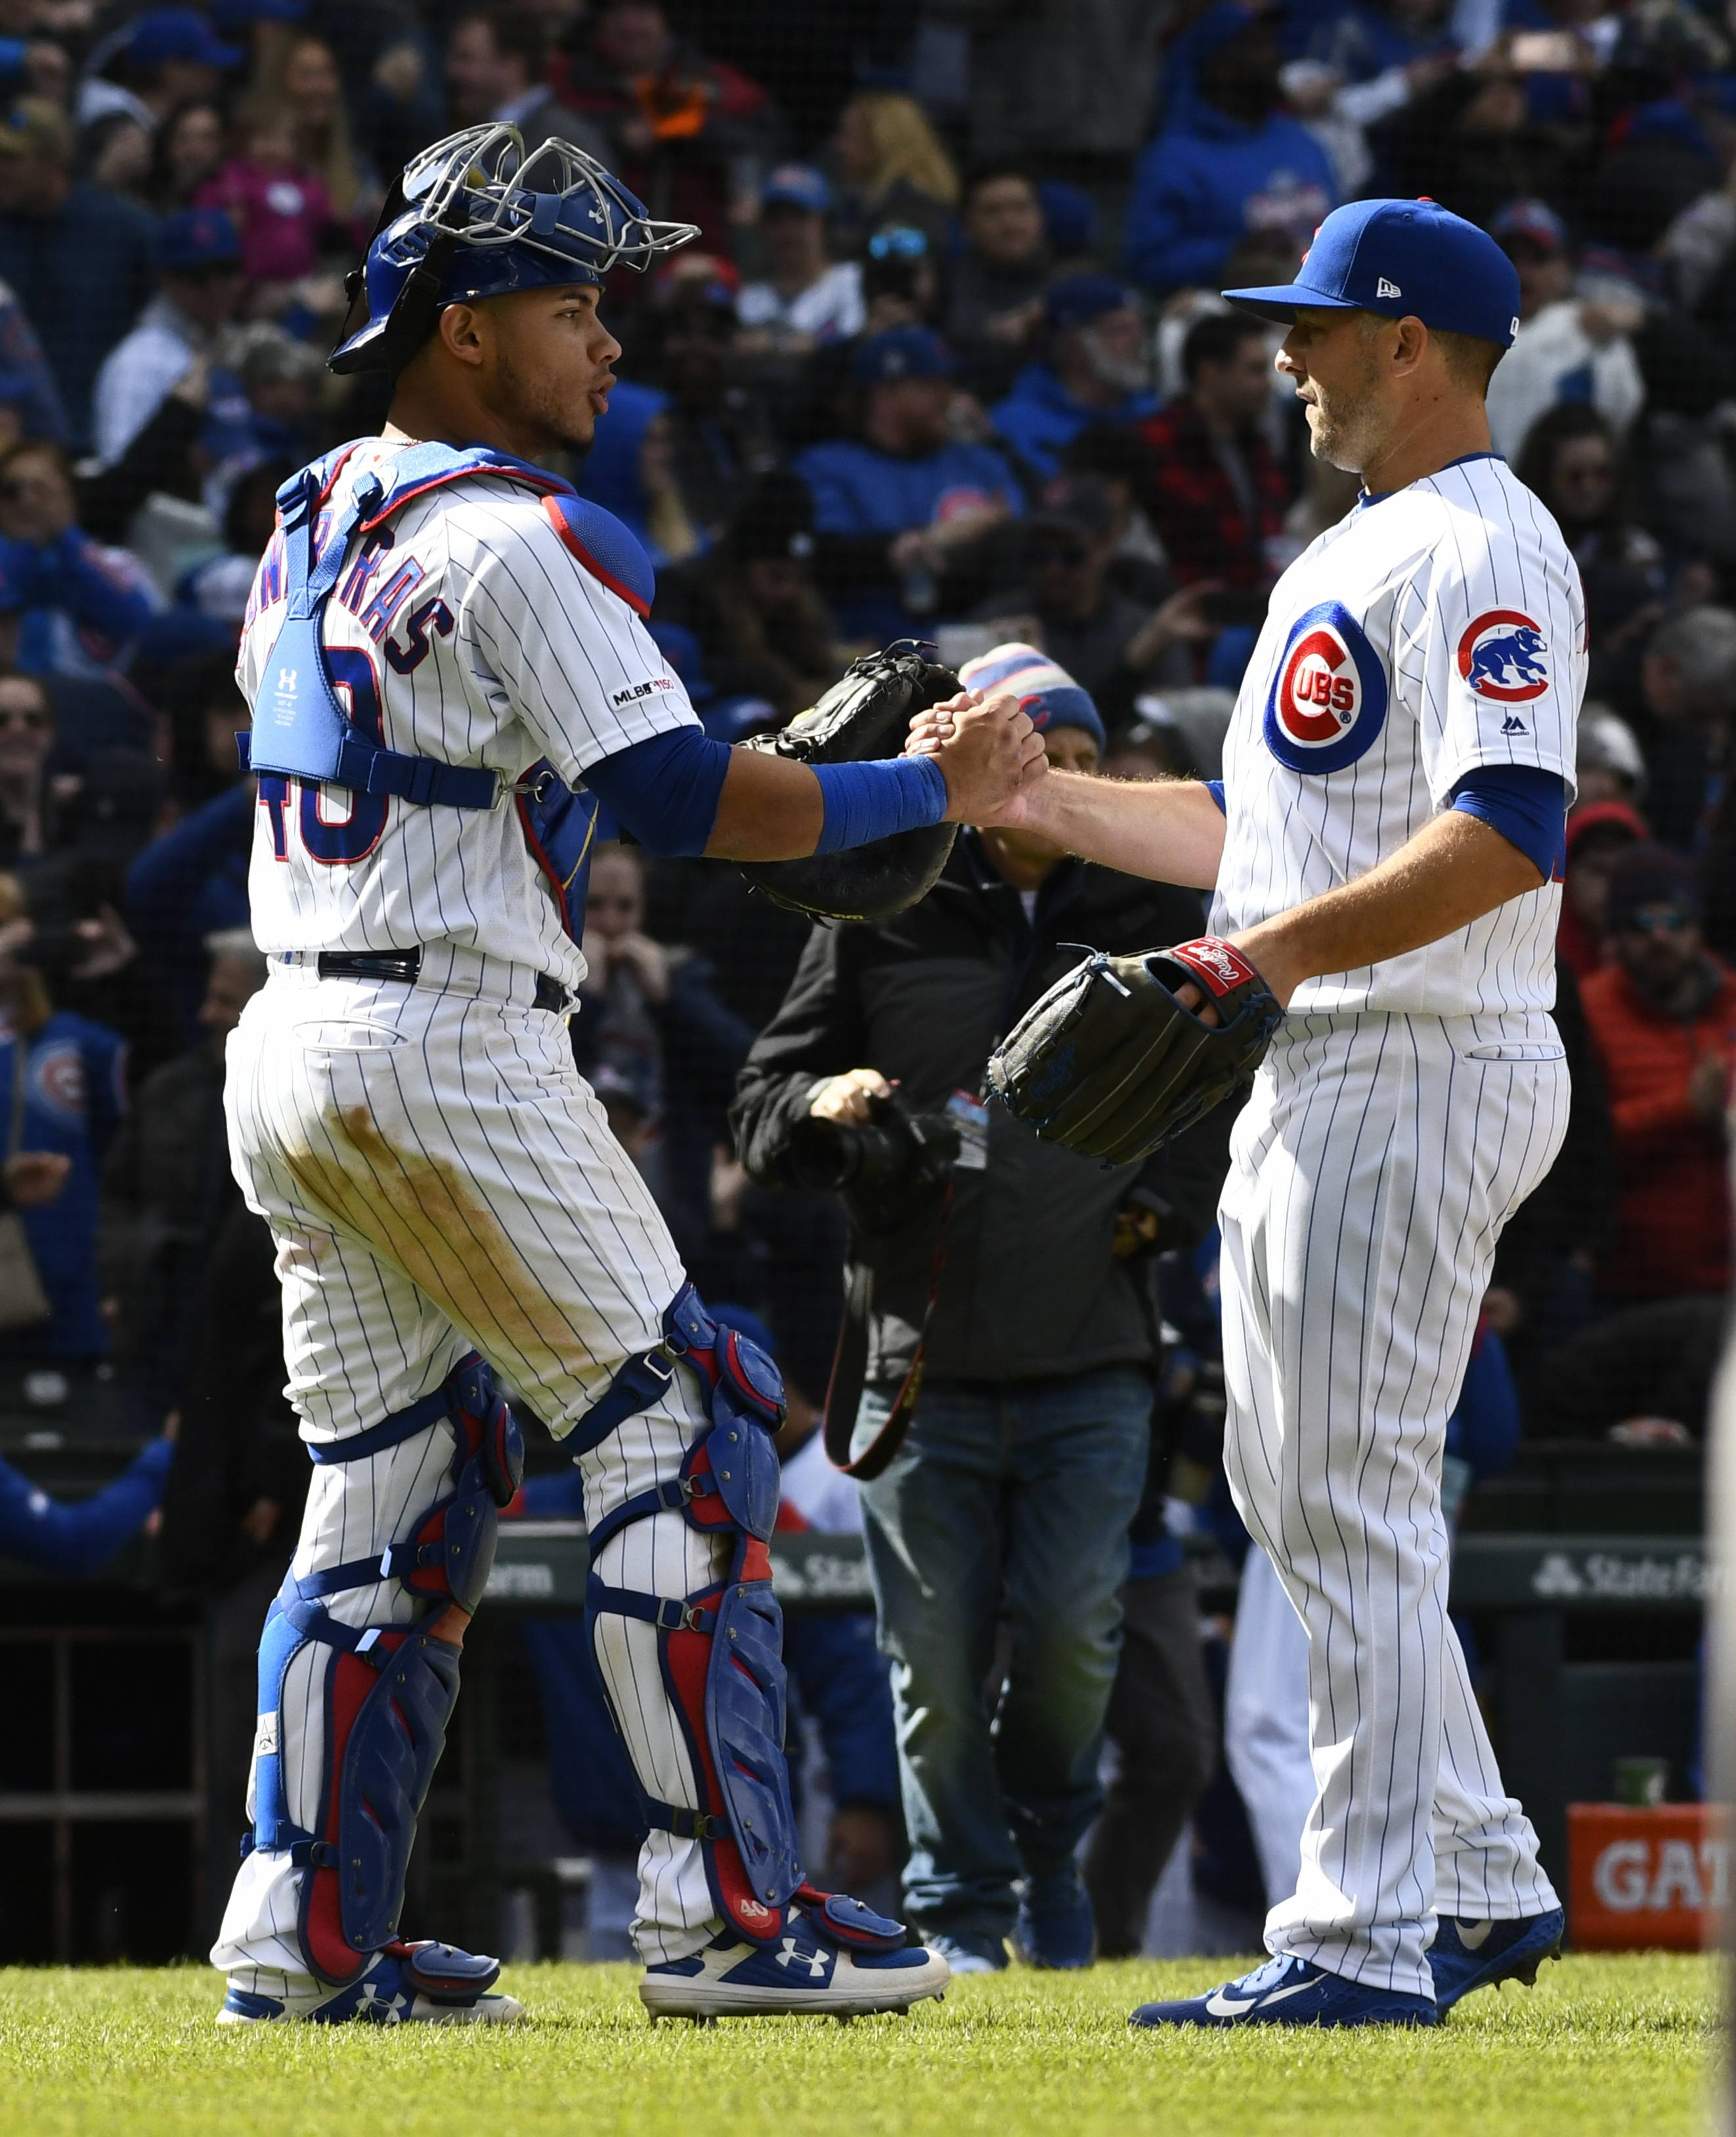 Chicago Cubs catcher Willson Contreras, left, and relief pitcher Brandon Kintzler, right, celebrate after a baseball game against the Los Angeles Angels, Friday, April 12, 2019, in Chicago. (AP Photo/Matt Marton)